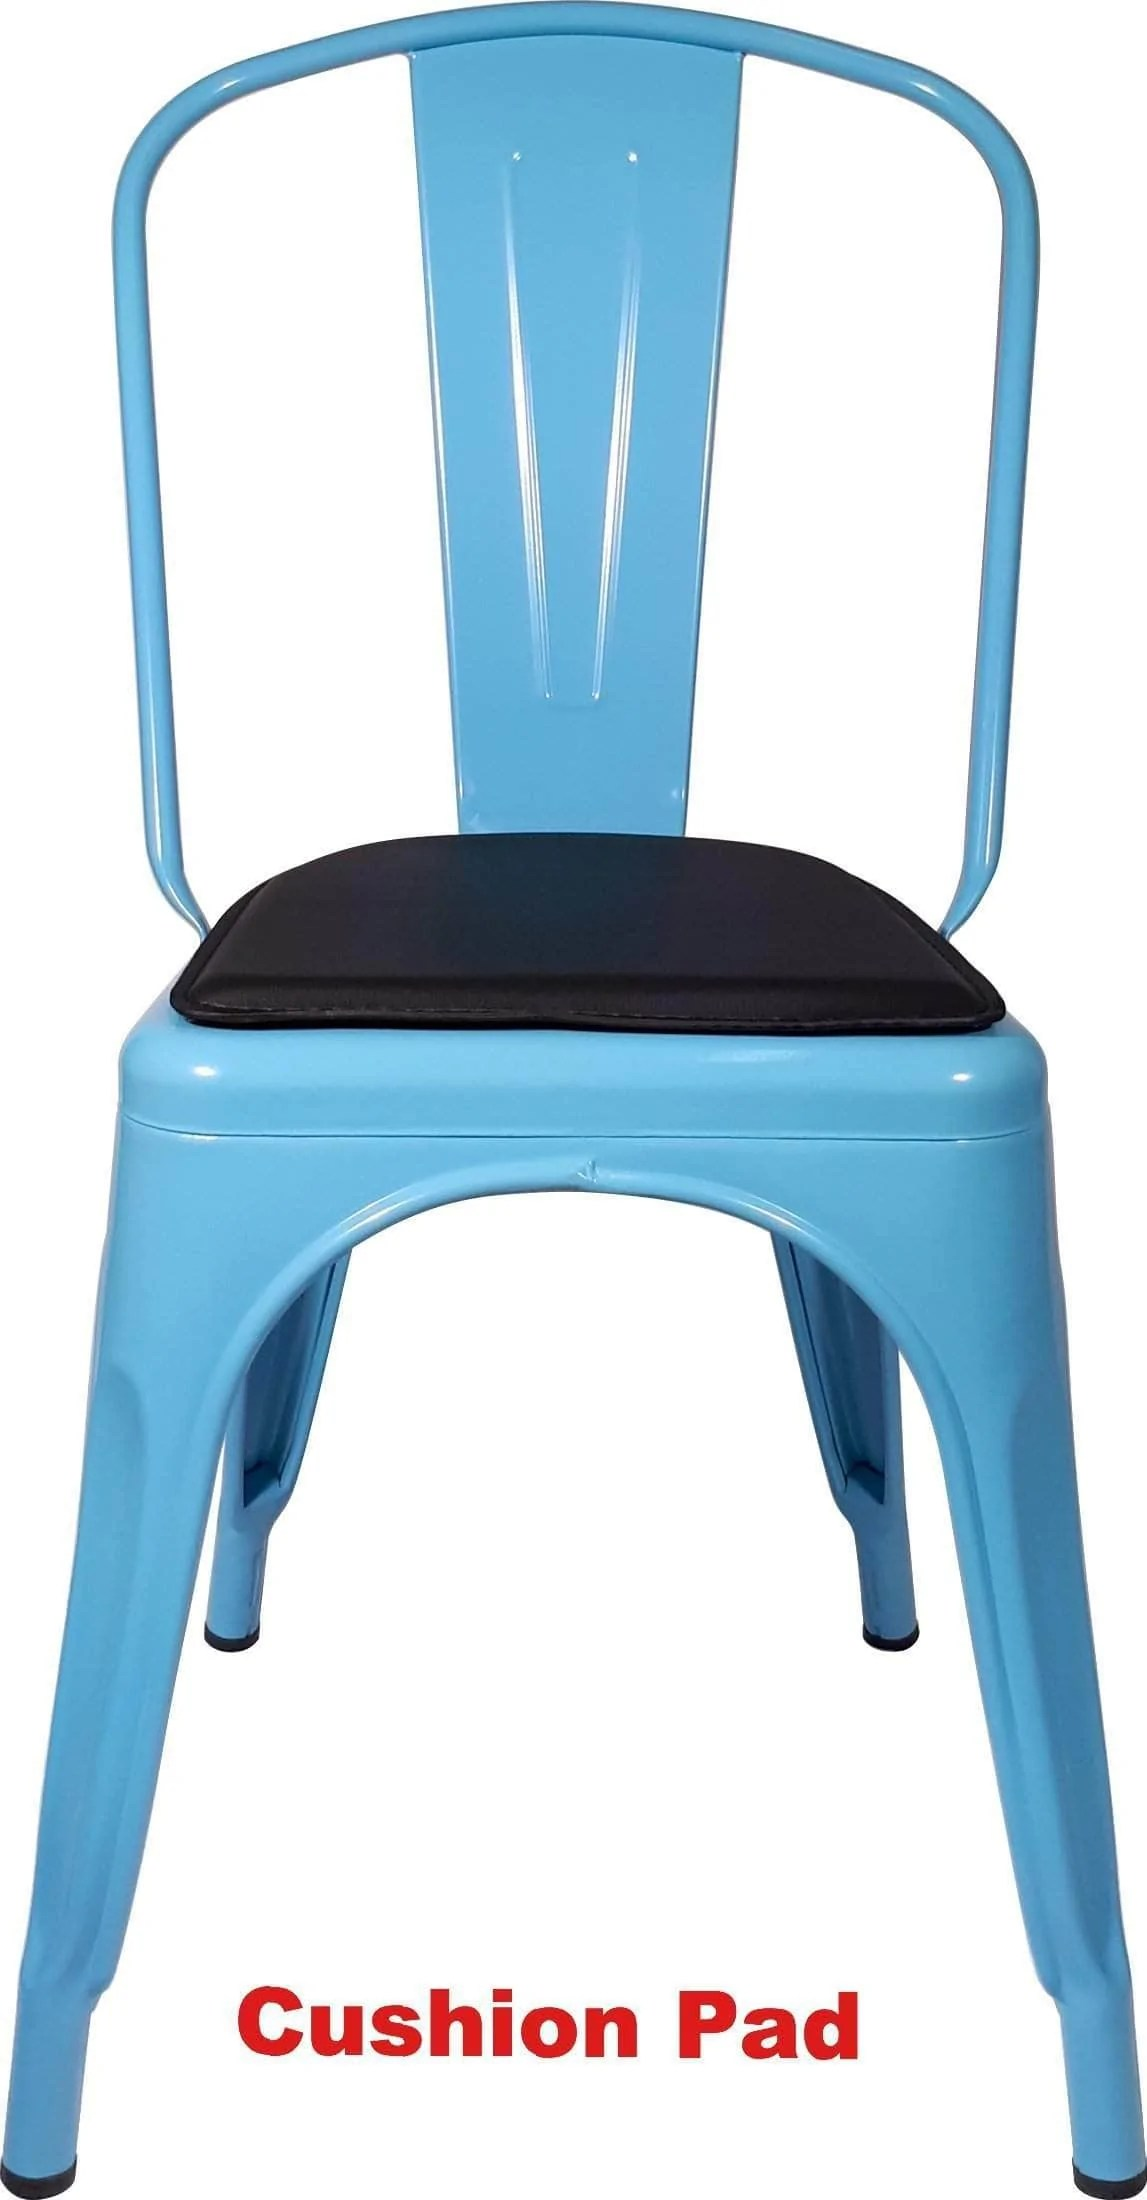 Egg Chair Perth Light Blue Replica Tolix Cafe Chair High Back Perth Only